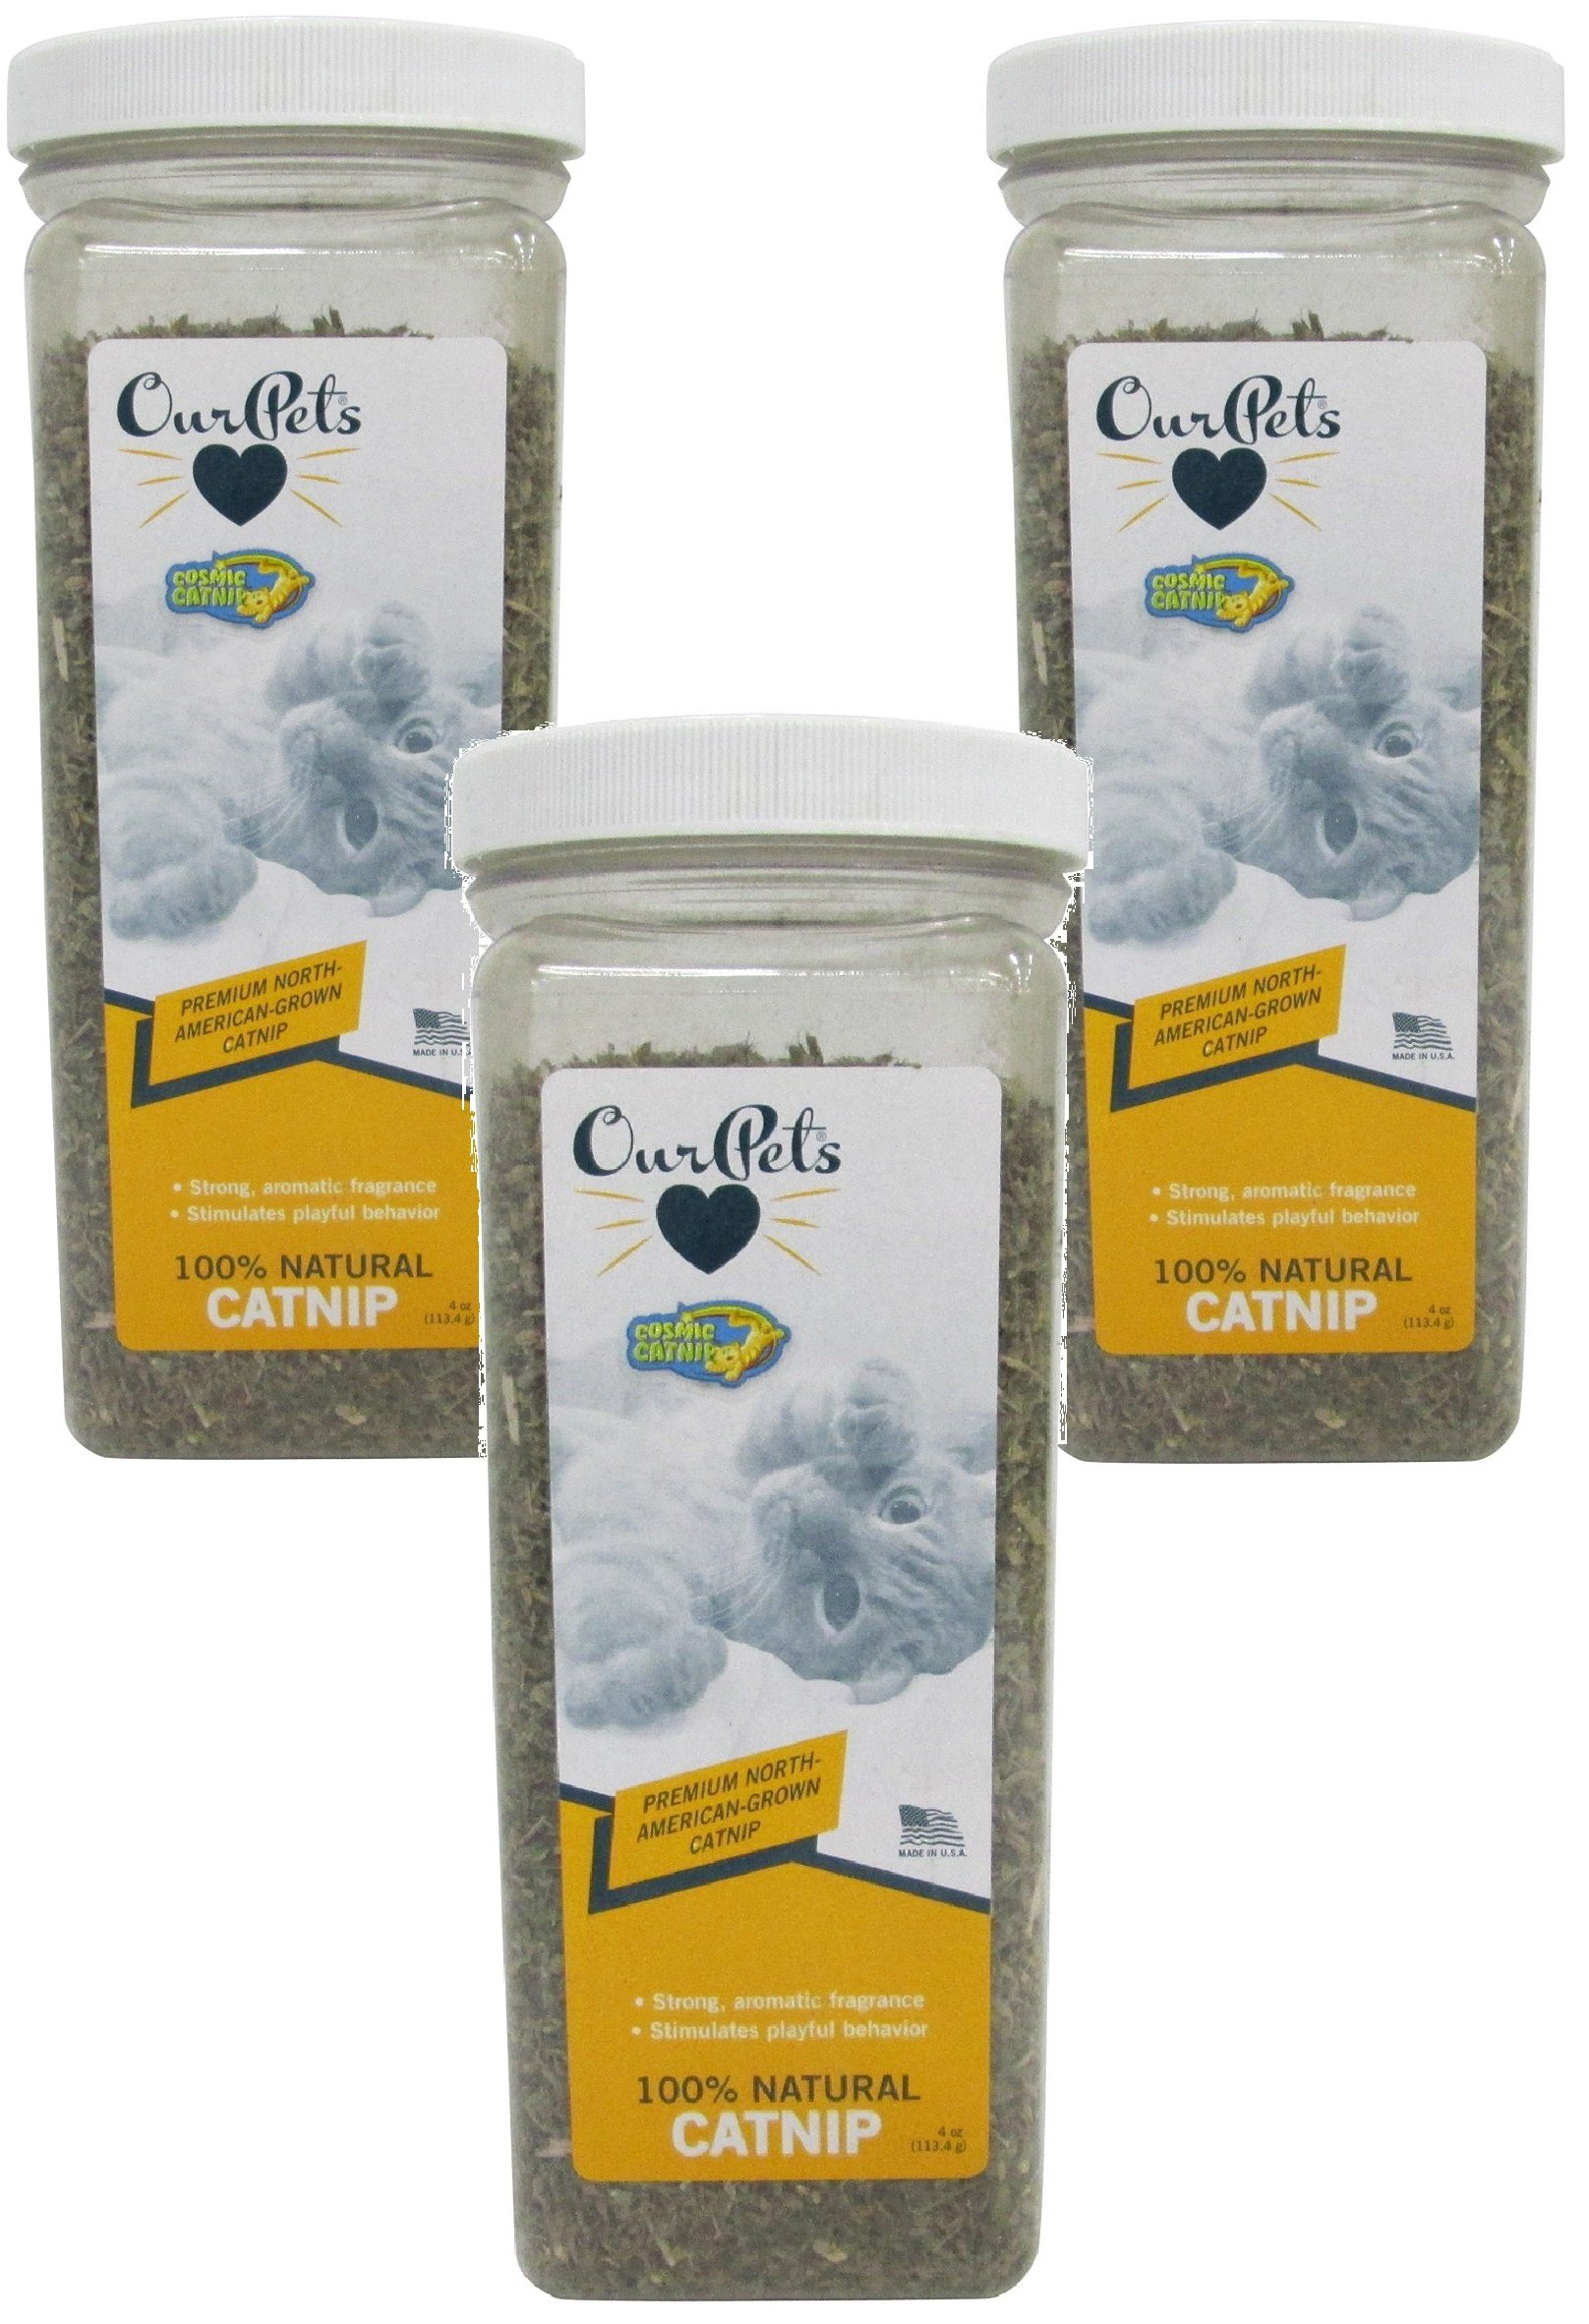 (3 Pack) OurPets Premium North-American Grown Catnip, 4 Ounces each